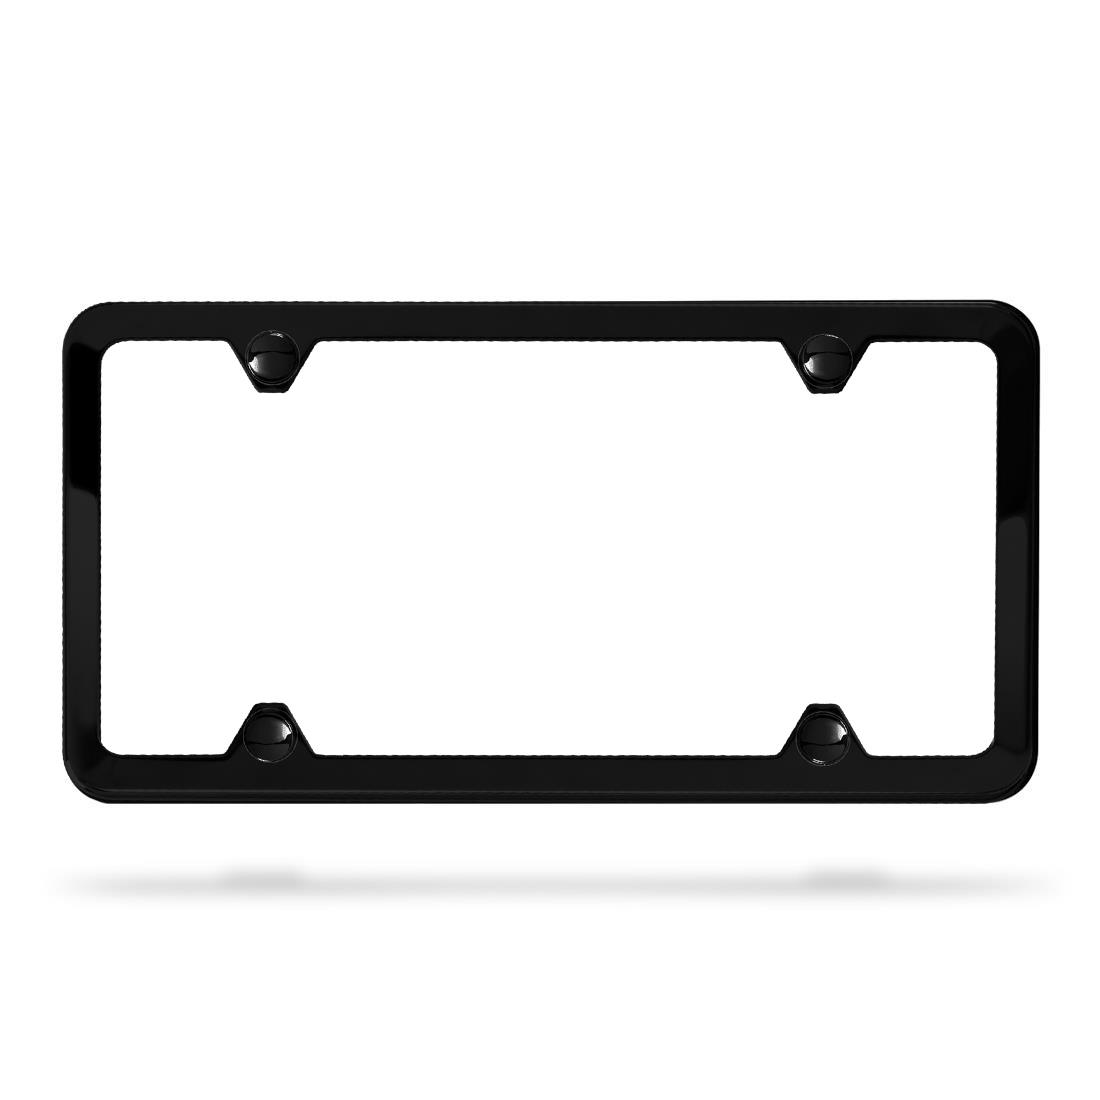 BMW Slimline license plate frame